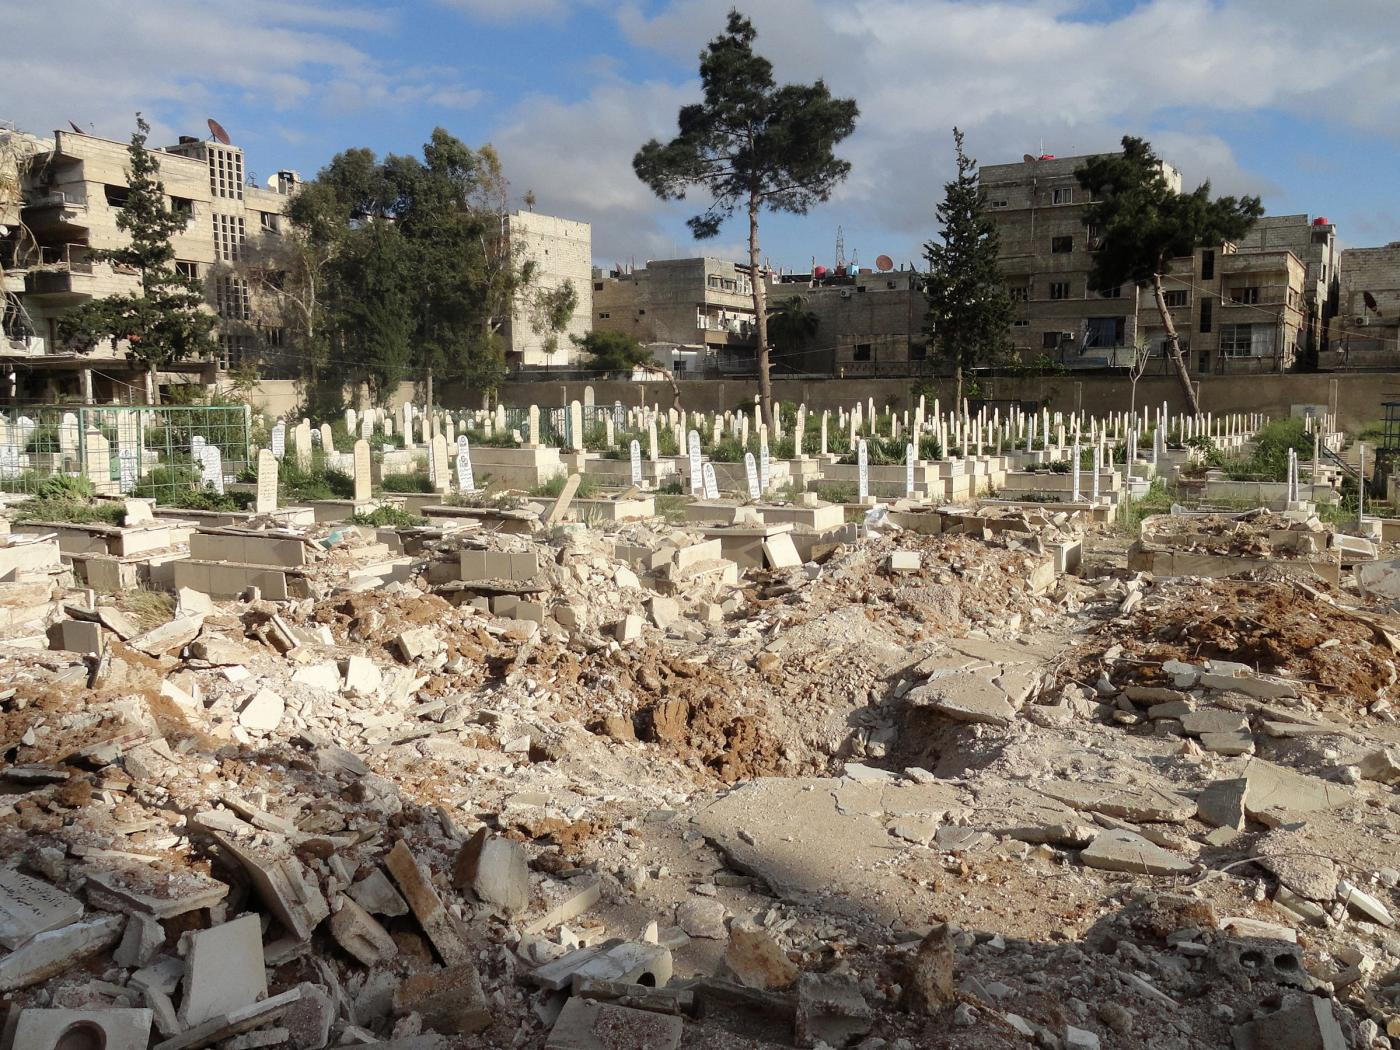 A picture taken on 11 April 2015, shows the damage inflicted upon a cemetery, following a reported barrel bomb attack by Syrian government forces, in the Yarmuk Palestinian refugee camp in the Syrian capital Damascus (RAMI AL-SAYED / AFP)